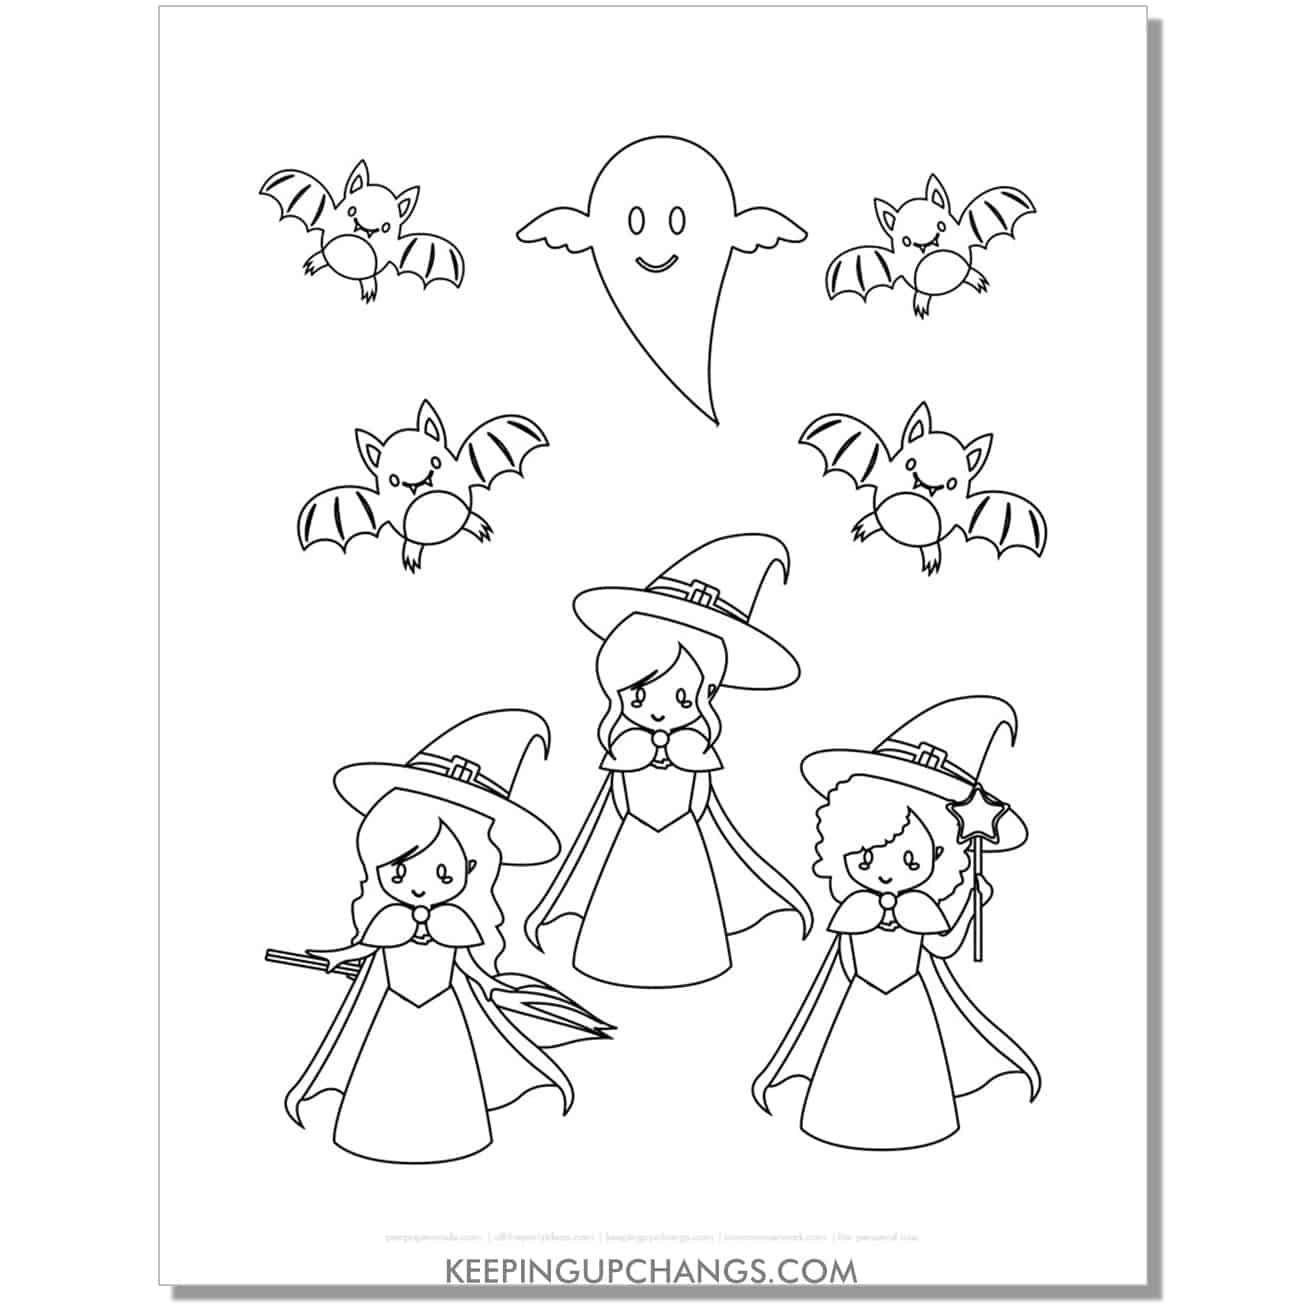 free cute girl witches, bats, ghosts coloring page.